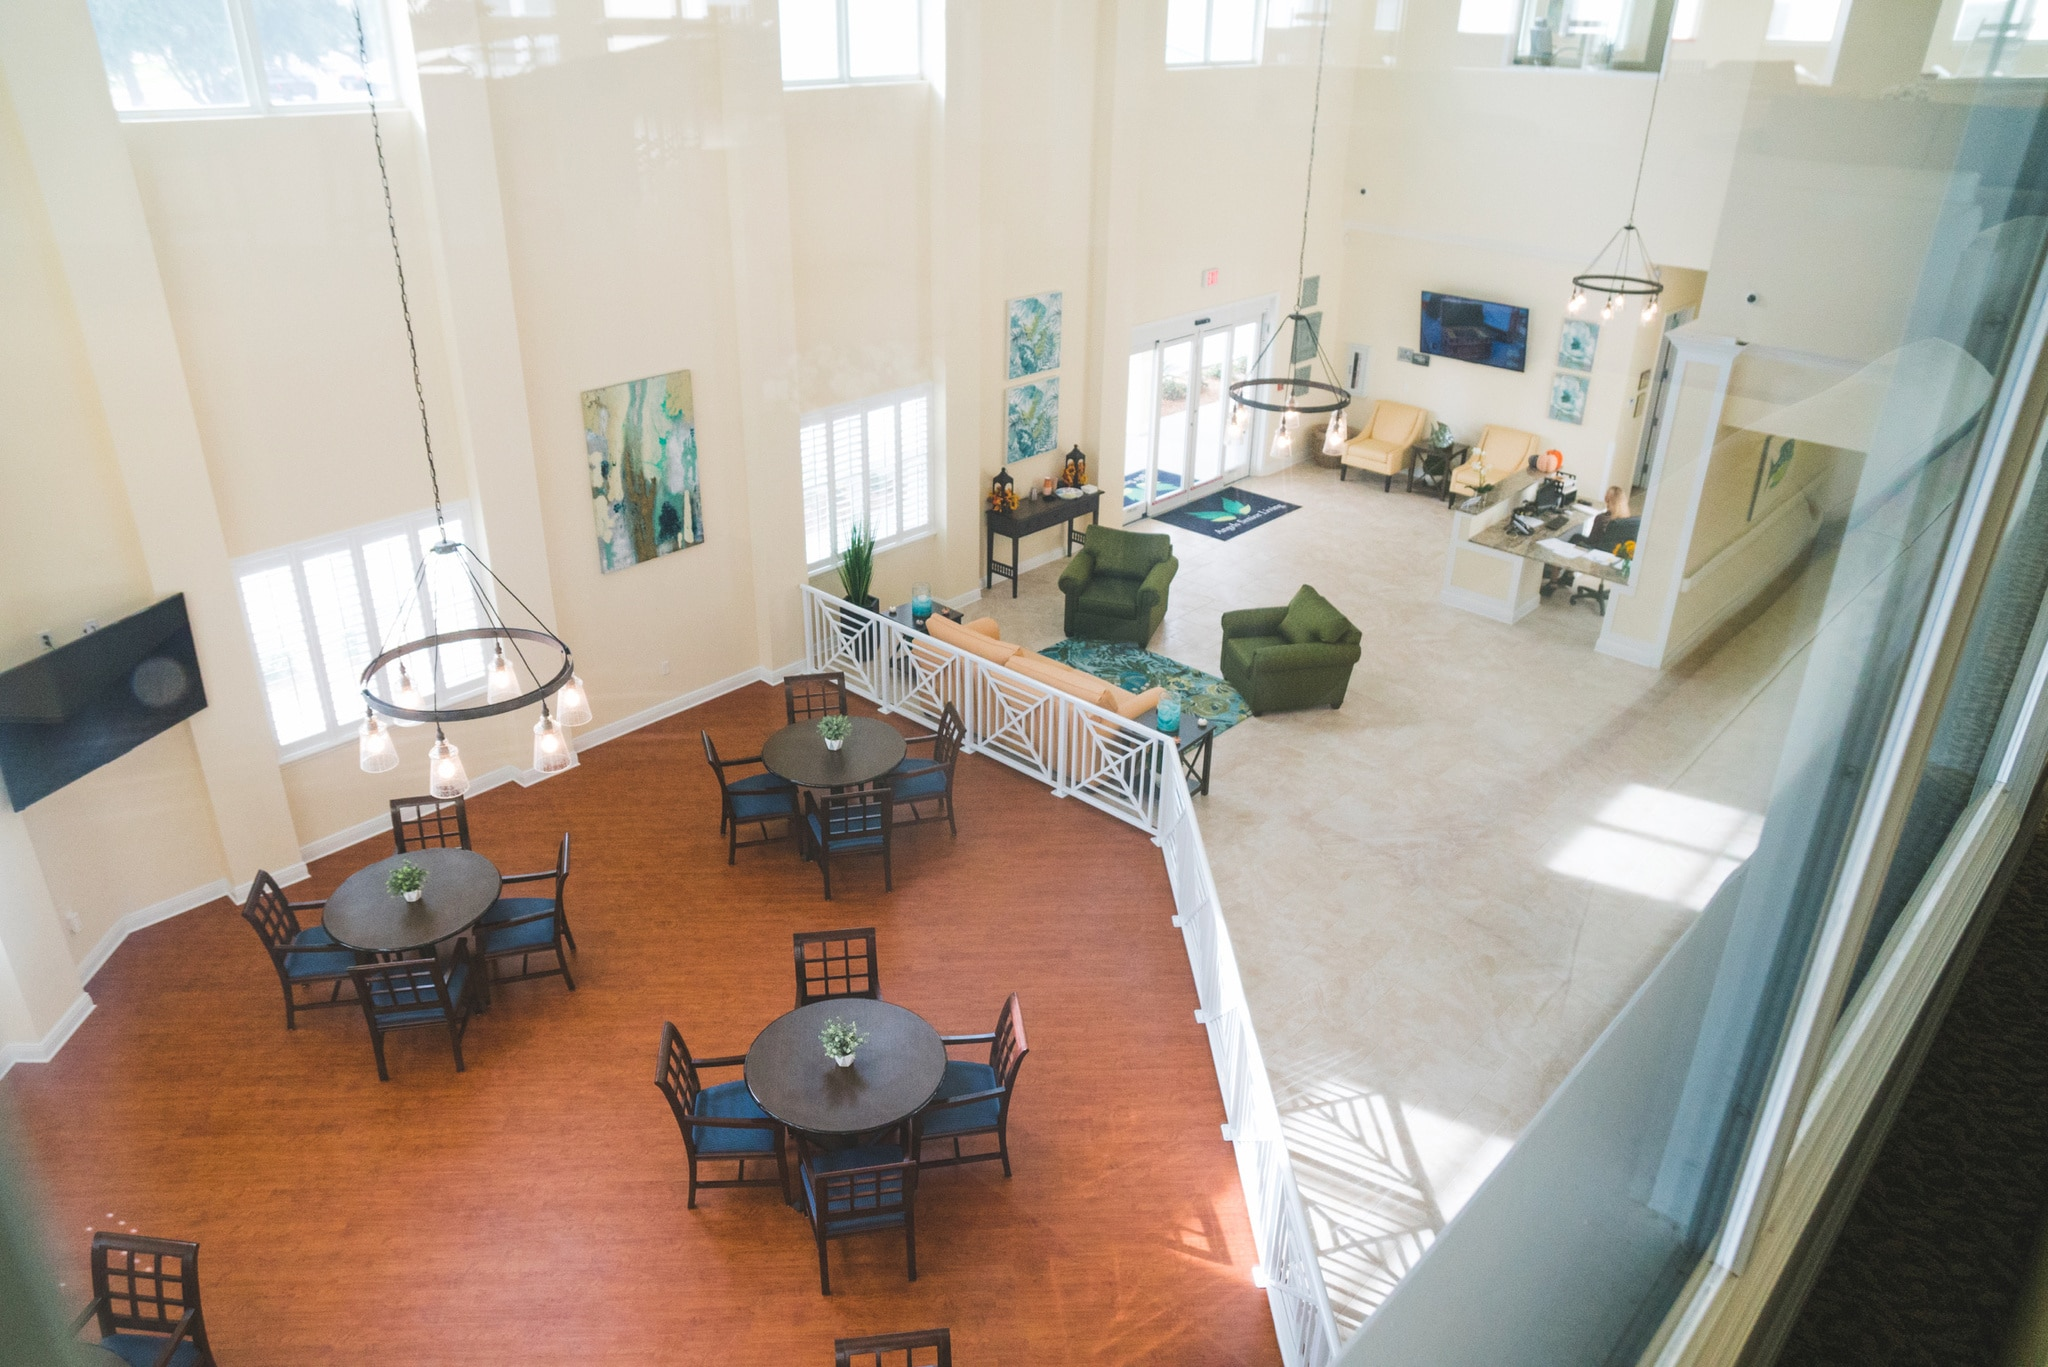 Our beautiful reception area offers visitors to our Sarasota assisted living facility a look into our luxurious community.